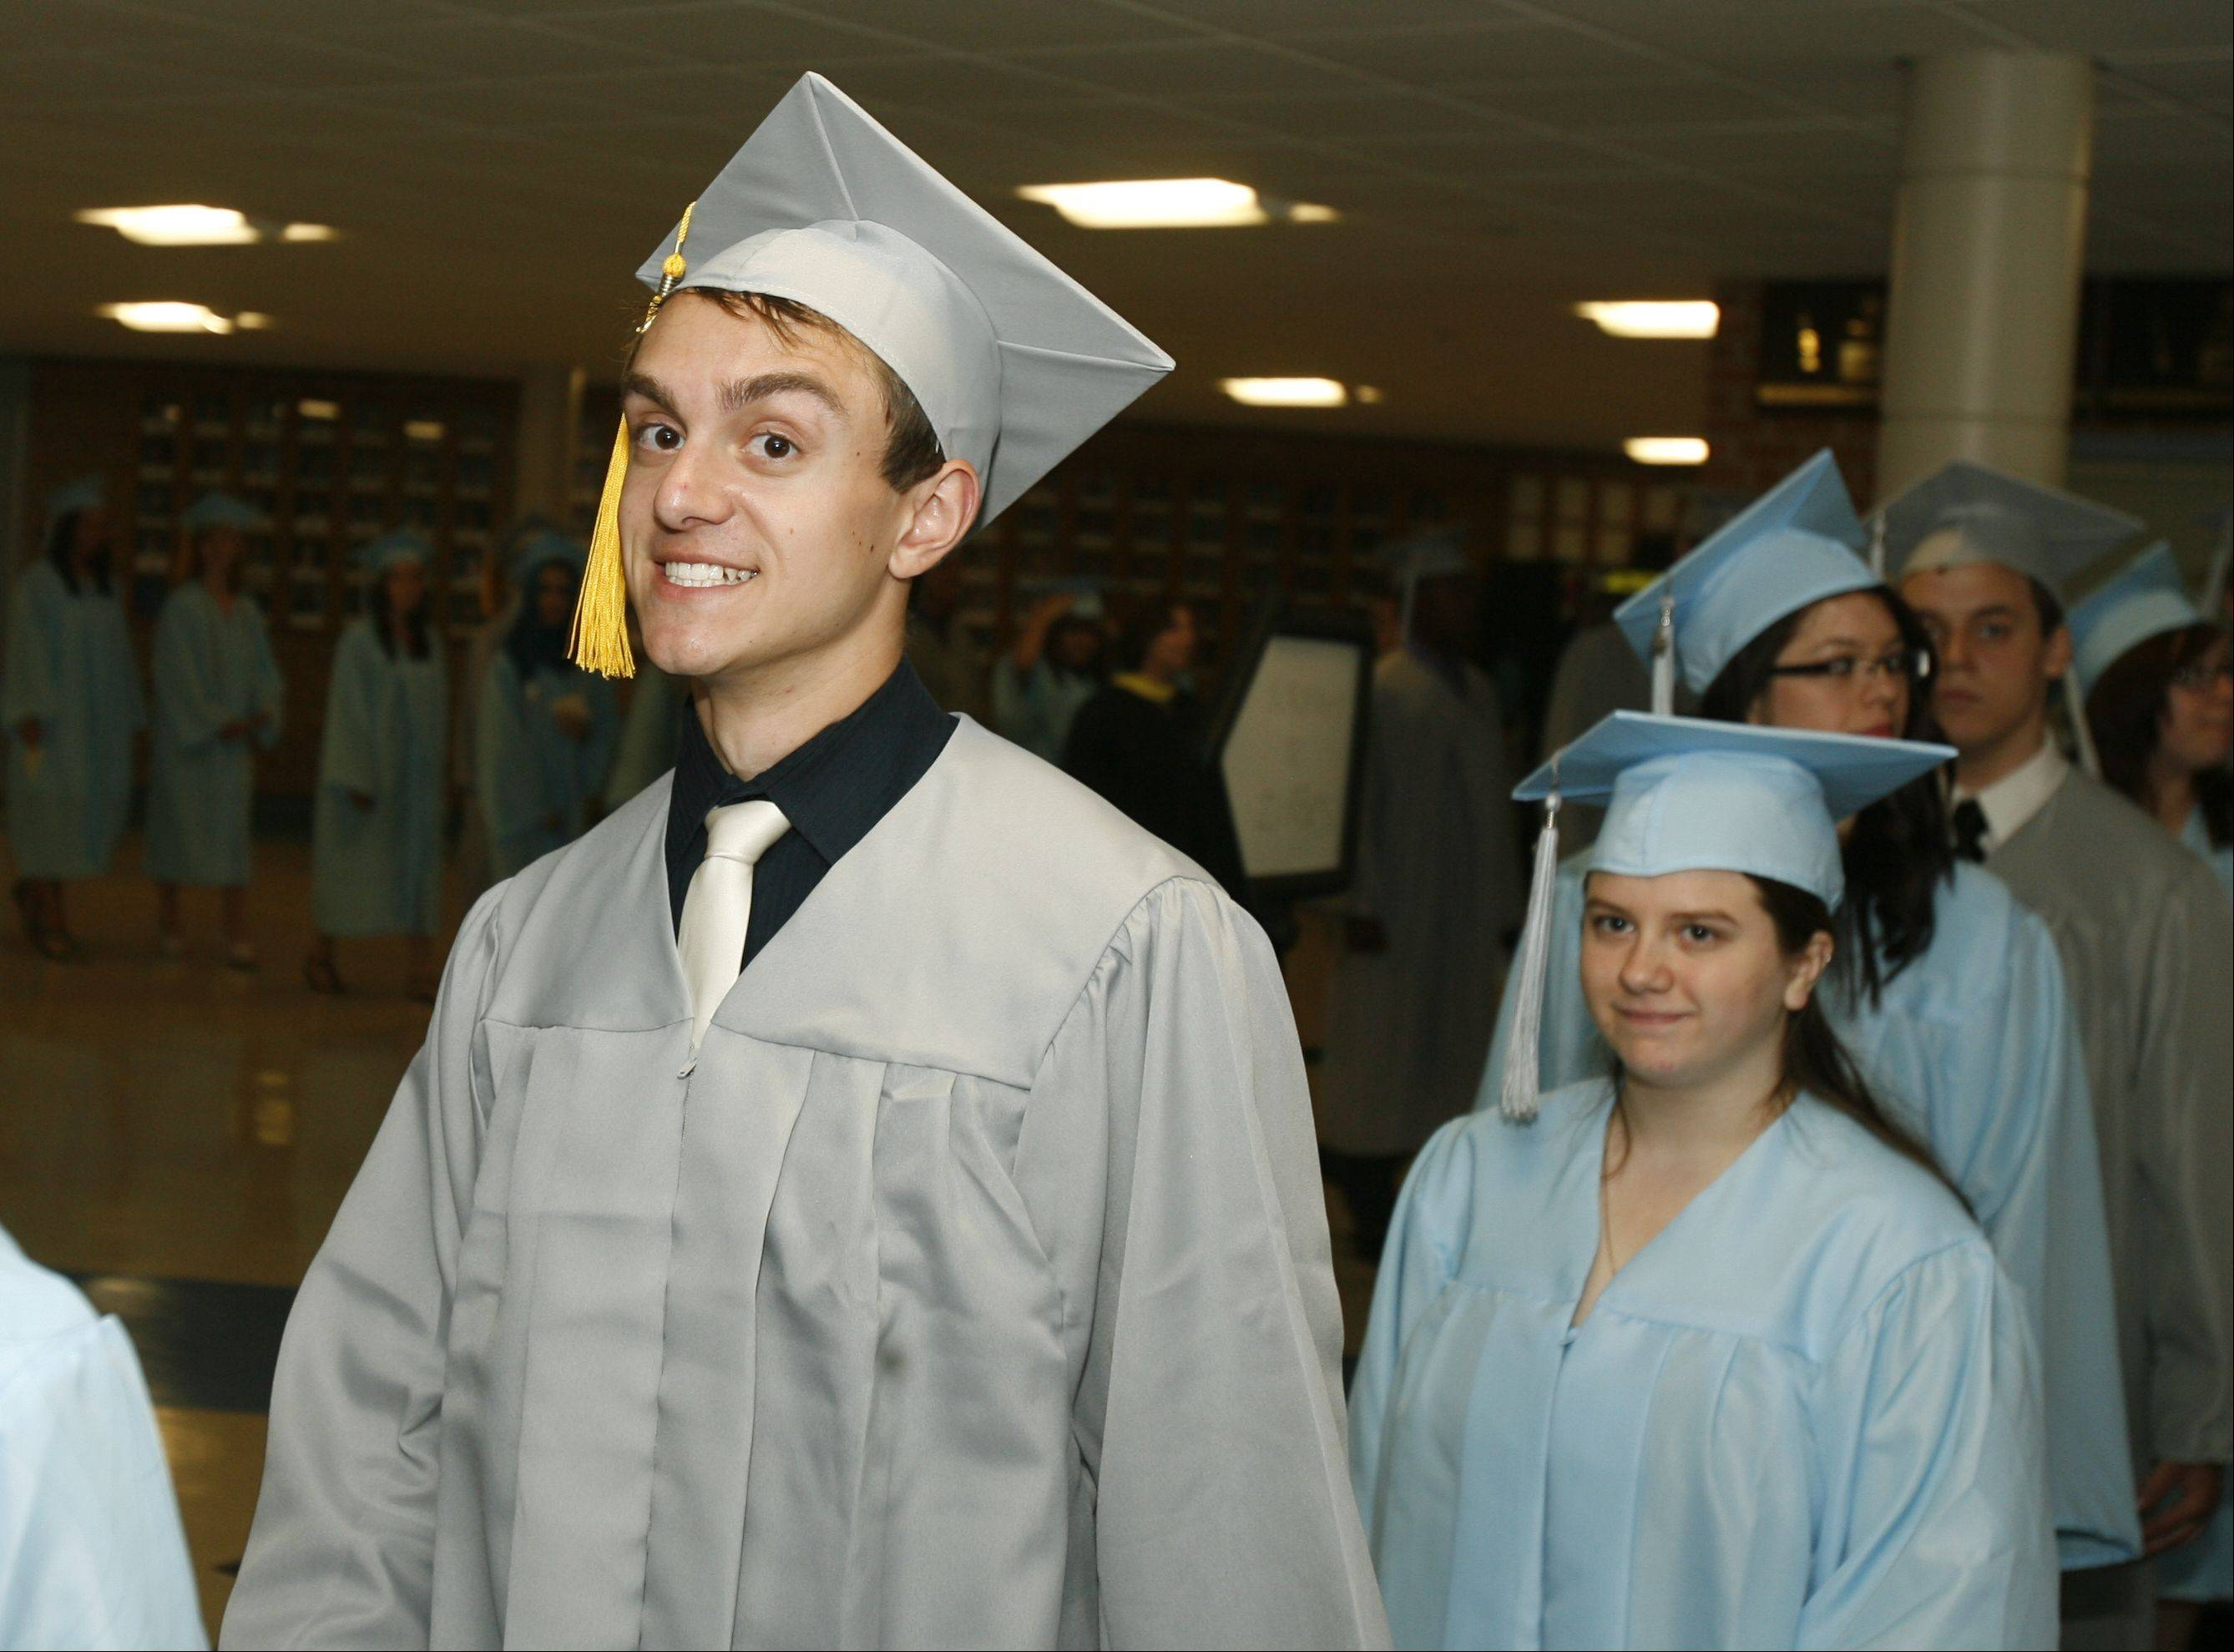 Willowbrook High School held its graduation ceremony Sunday June 10 at Willowbrook High School in Villa Park.